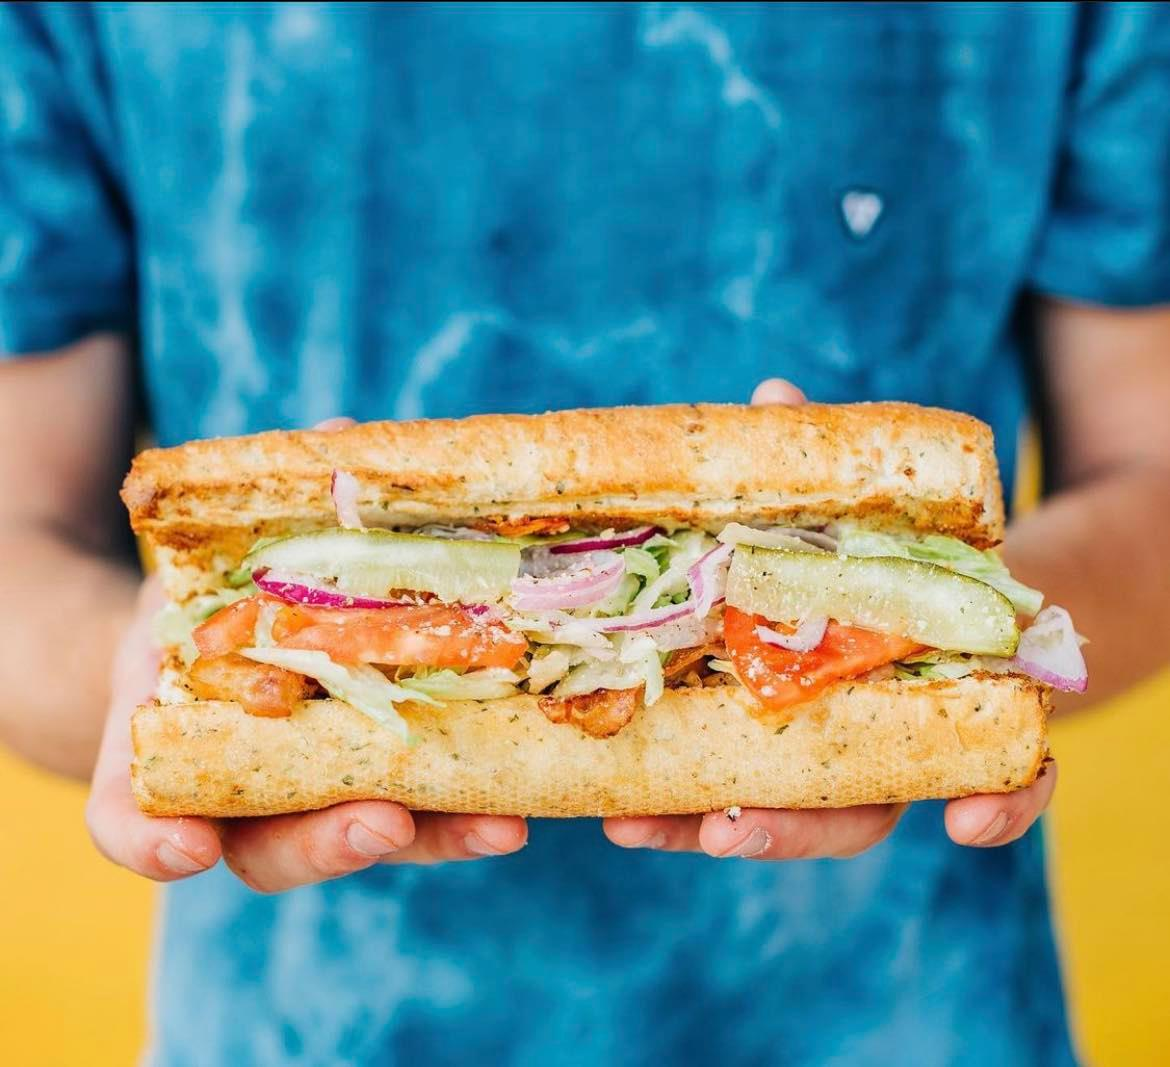 Against a yellow background, a person wearing a blue shirt holds a sub sandwich stuffed with veggies